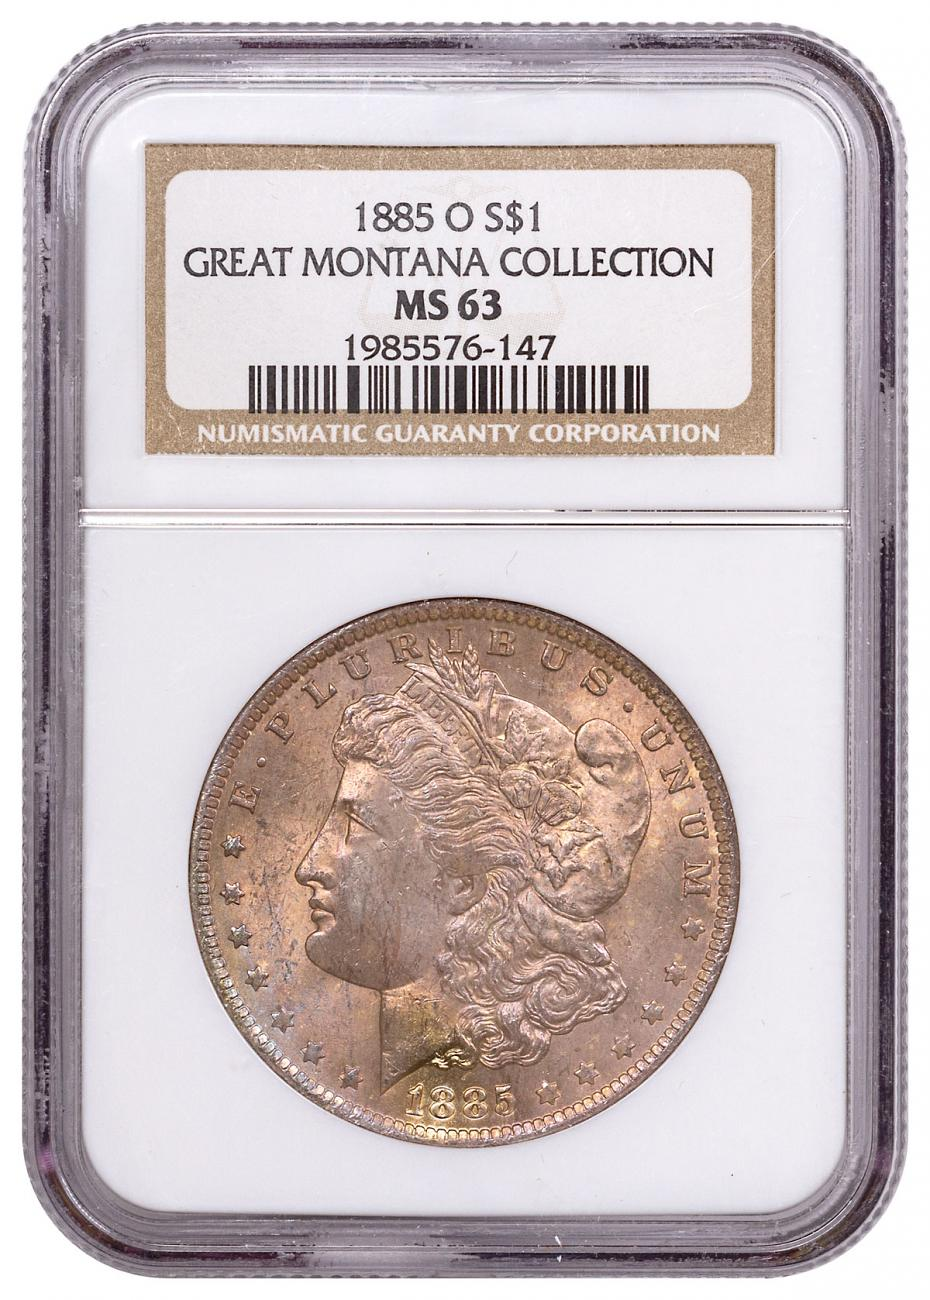 1885-O Morgan Silver Dollar From the Great Montana Collection NGC MS63 Toned CPCR 6147